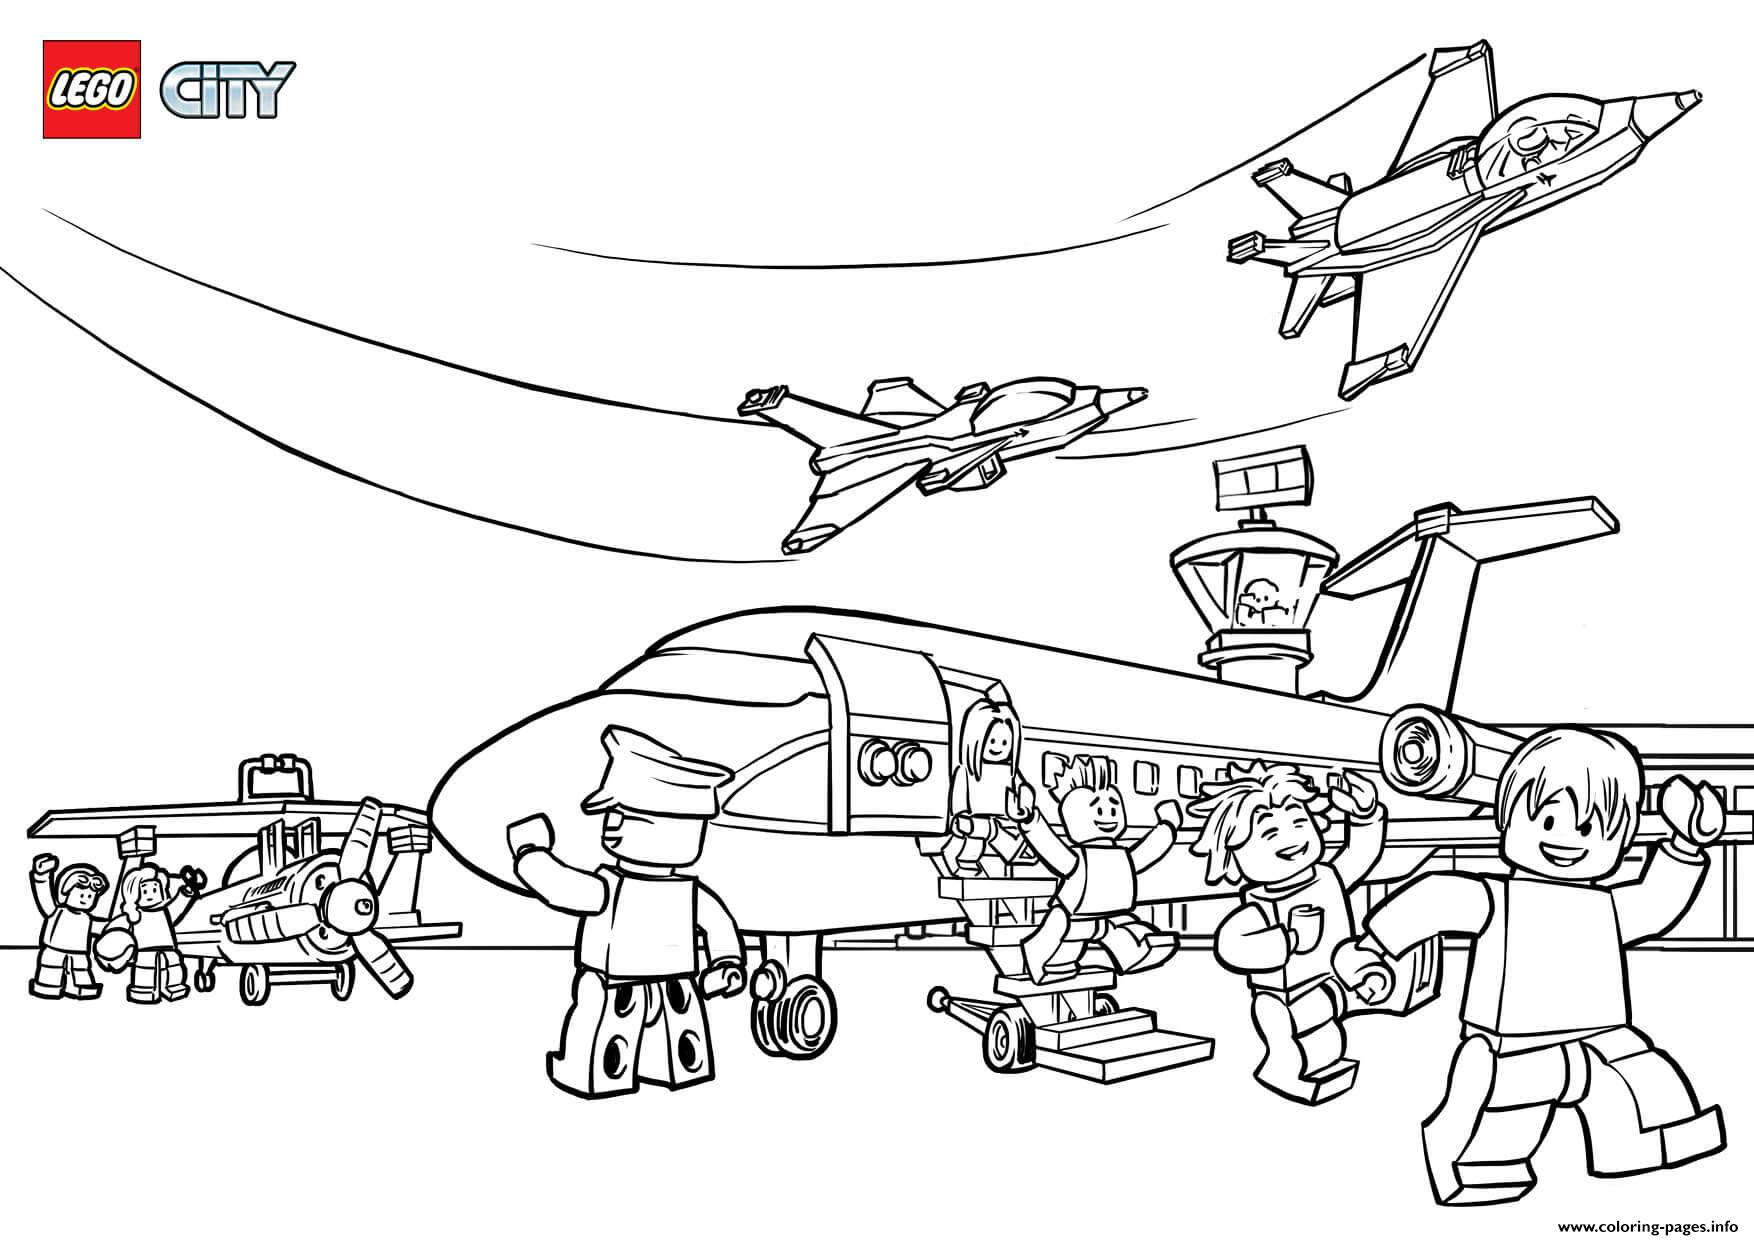 Lego City Airport Coloring Pages Printable